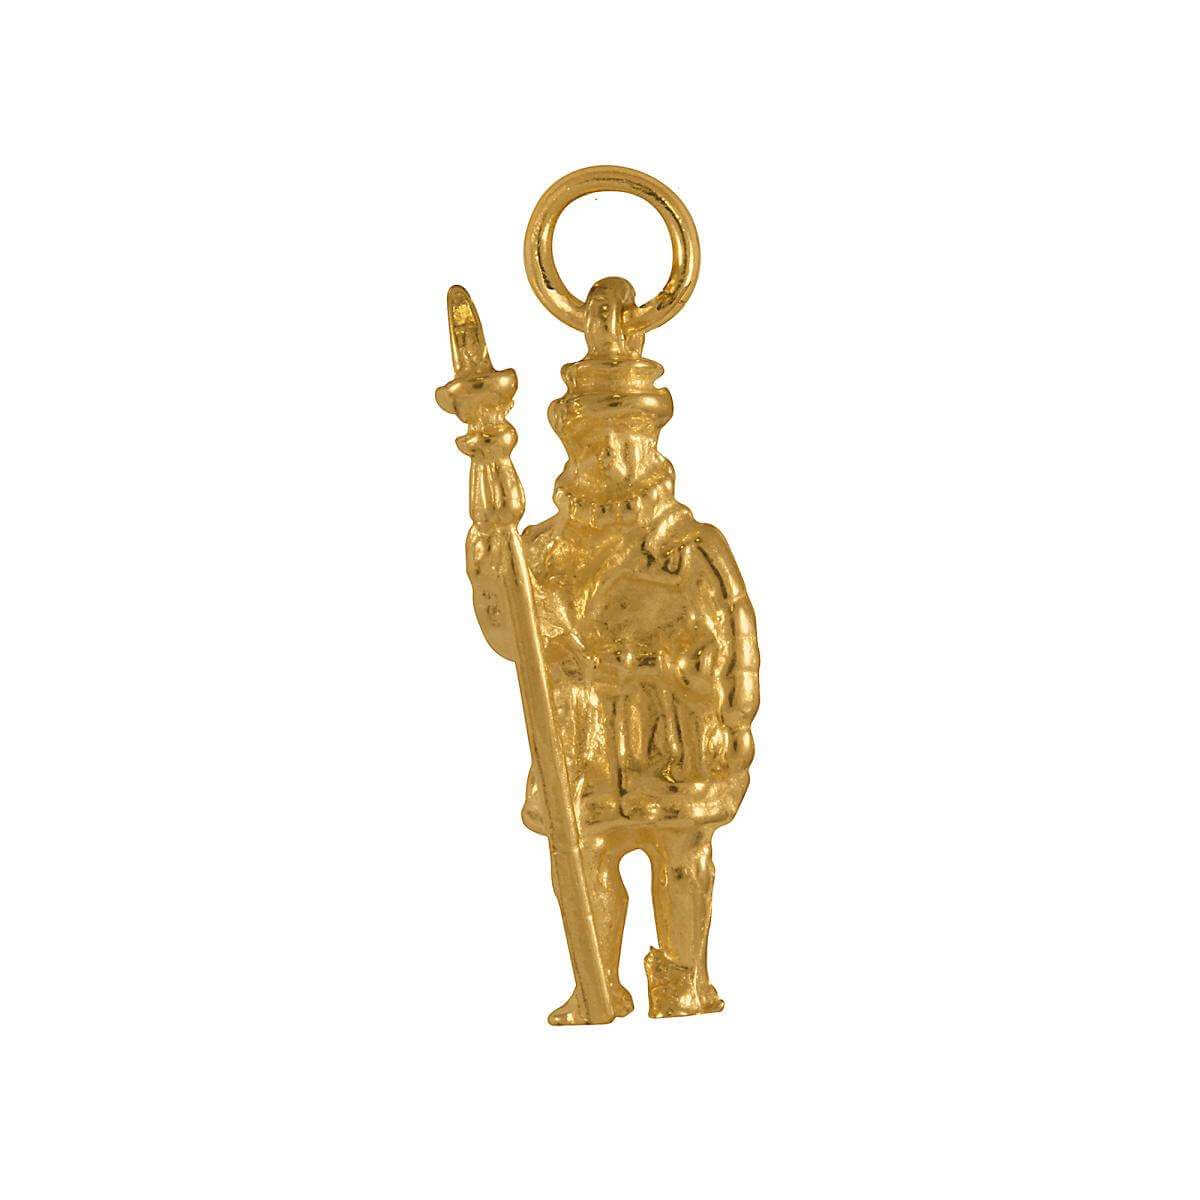 9ct Gold Beefeater Charm